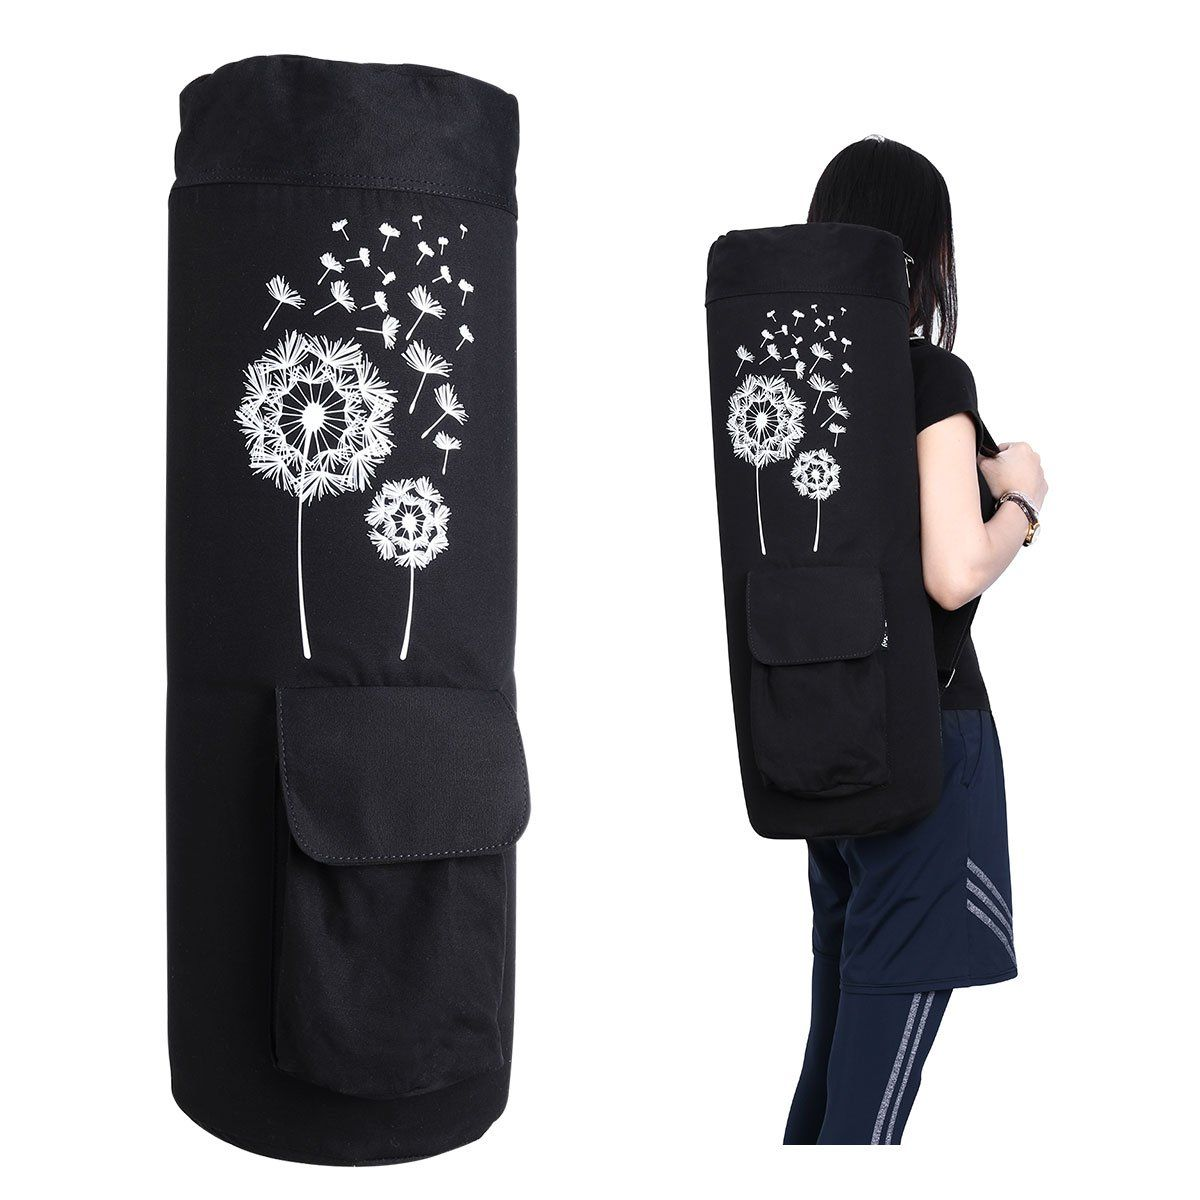 Ibasetoy Large Yoga Mat Bag 25 2 X 8 2 Fits 1 2 Thick Yoga Mats Or 1 4 Yoga Mats And Yoga Towel Black With Images Mat Bag Yoga Mat Bag Large Yoga Mat